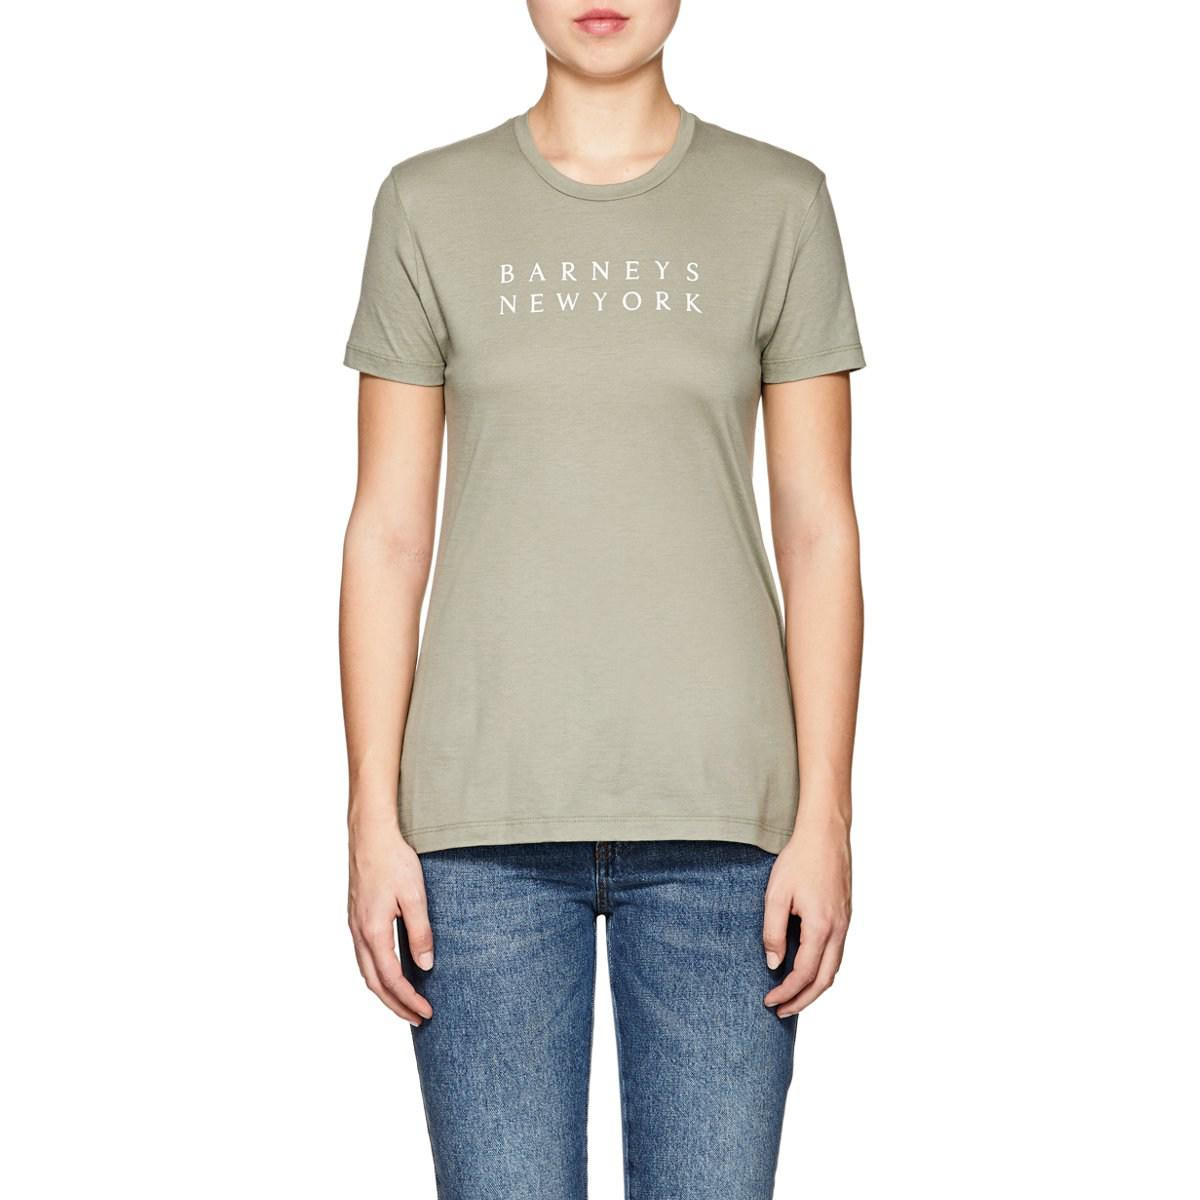 0b221a382 barneys-new-york-Dk-Green-Logo-Pima-Cotton-T-shirt.jpeg